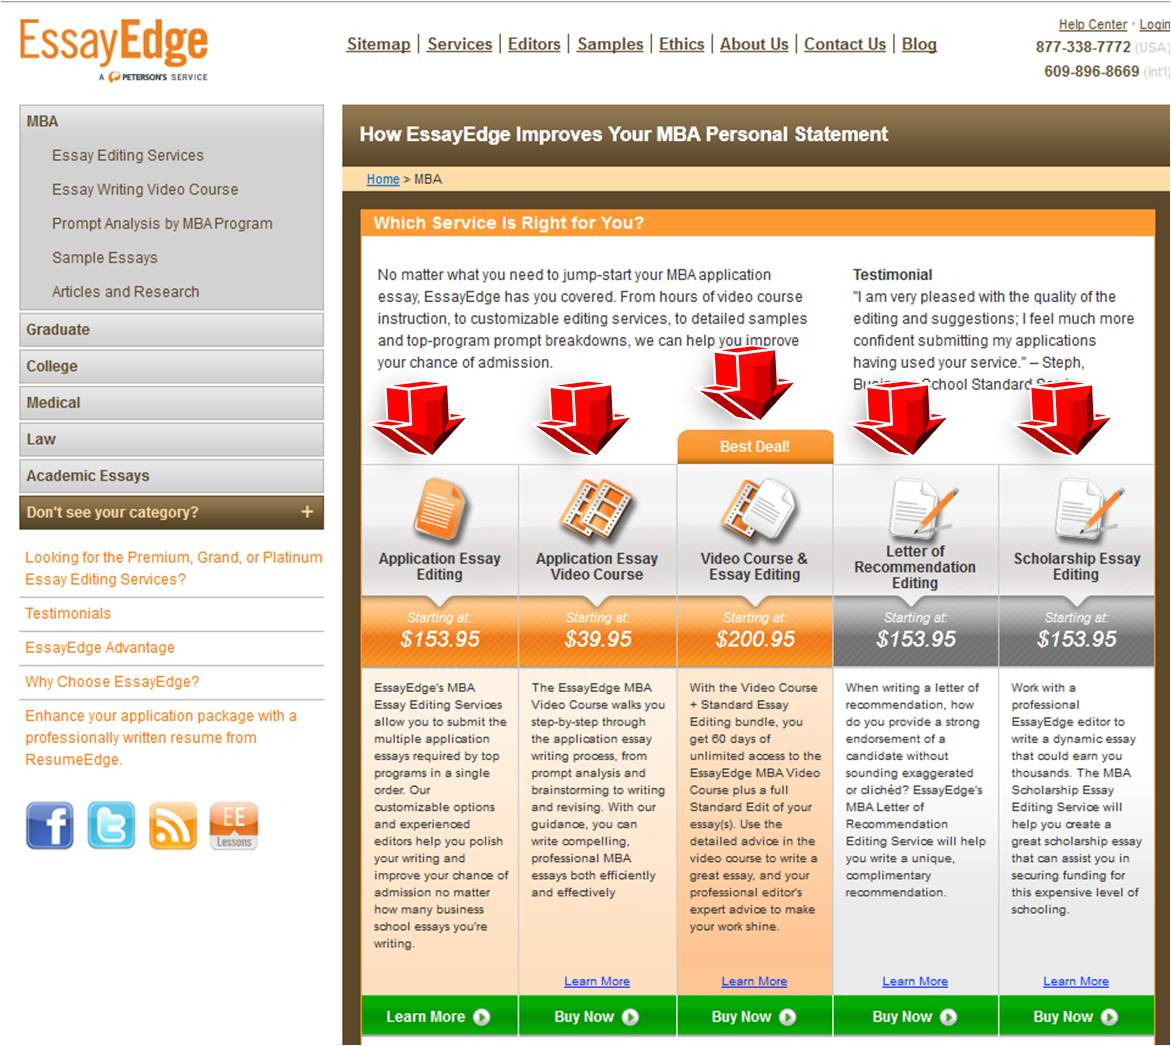 015 Essay Edge Step2 To Enter Essayedge Coupon Unusual Review Code Full